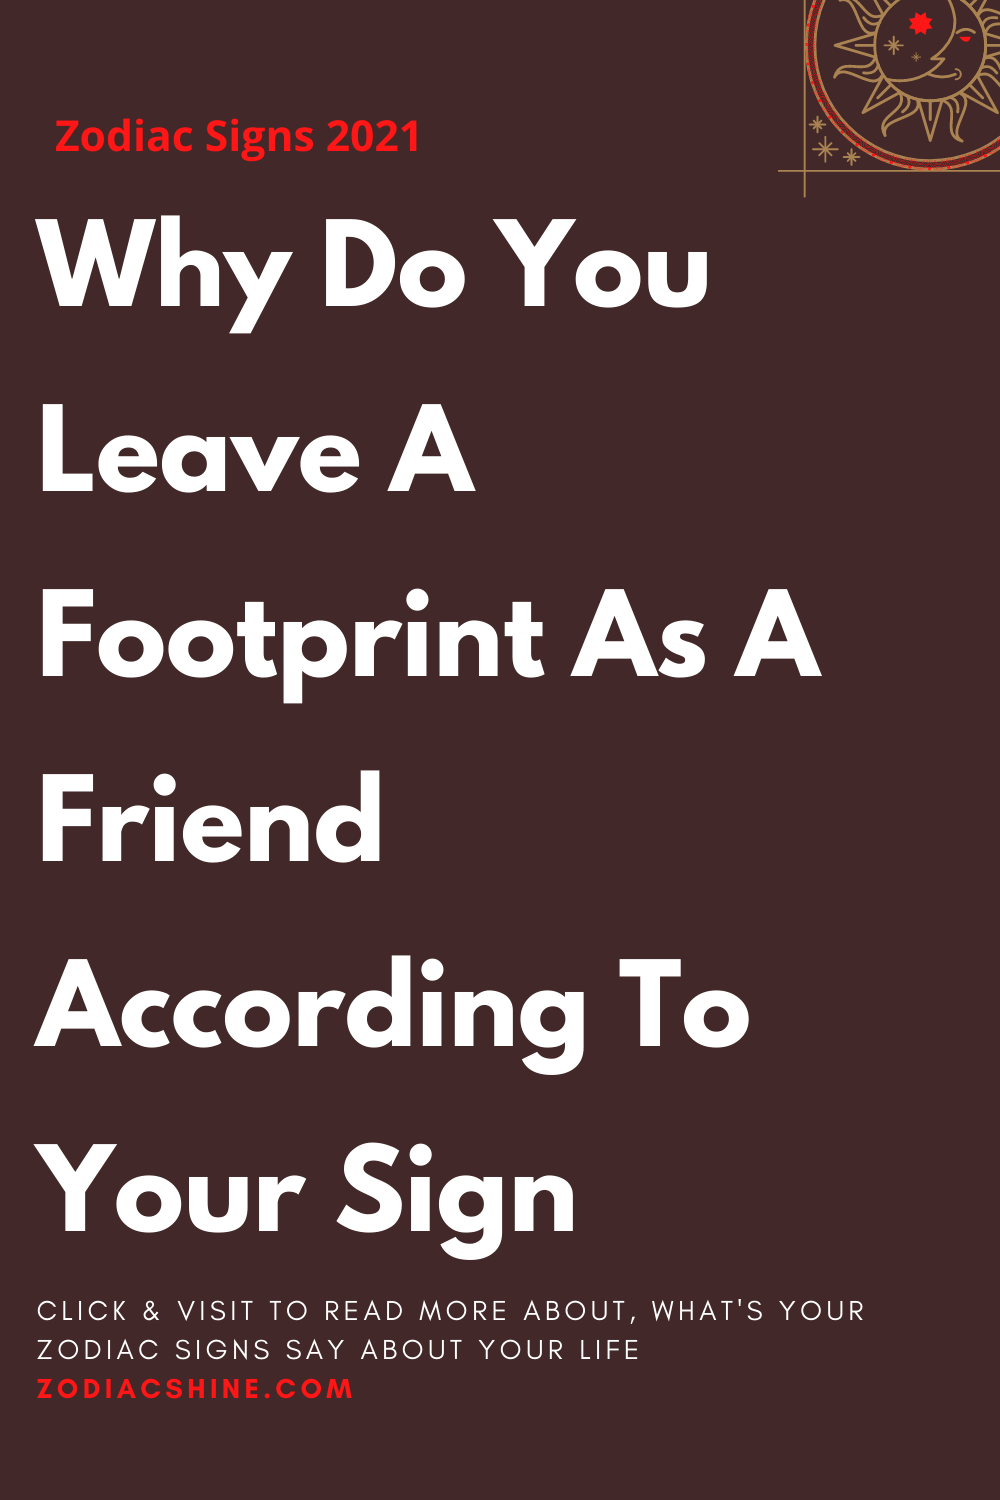 Why Do You Leave A Footprint As A Friend According To Your Sign